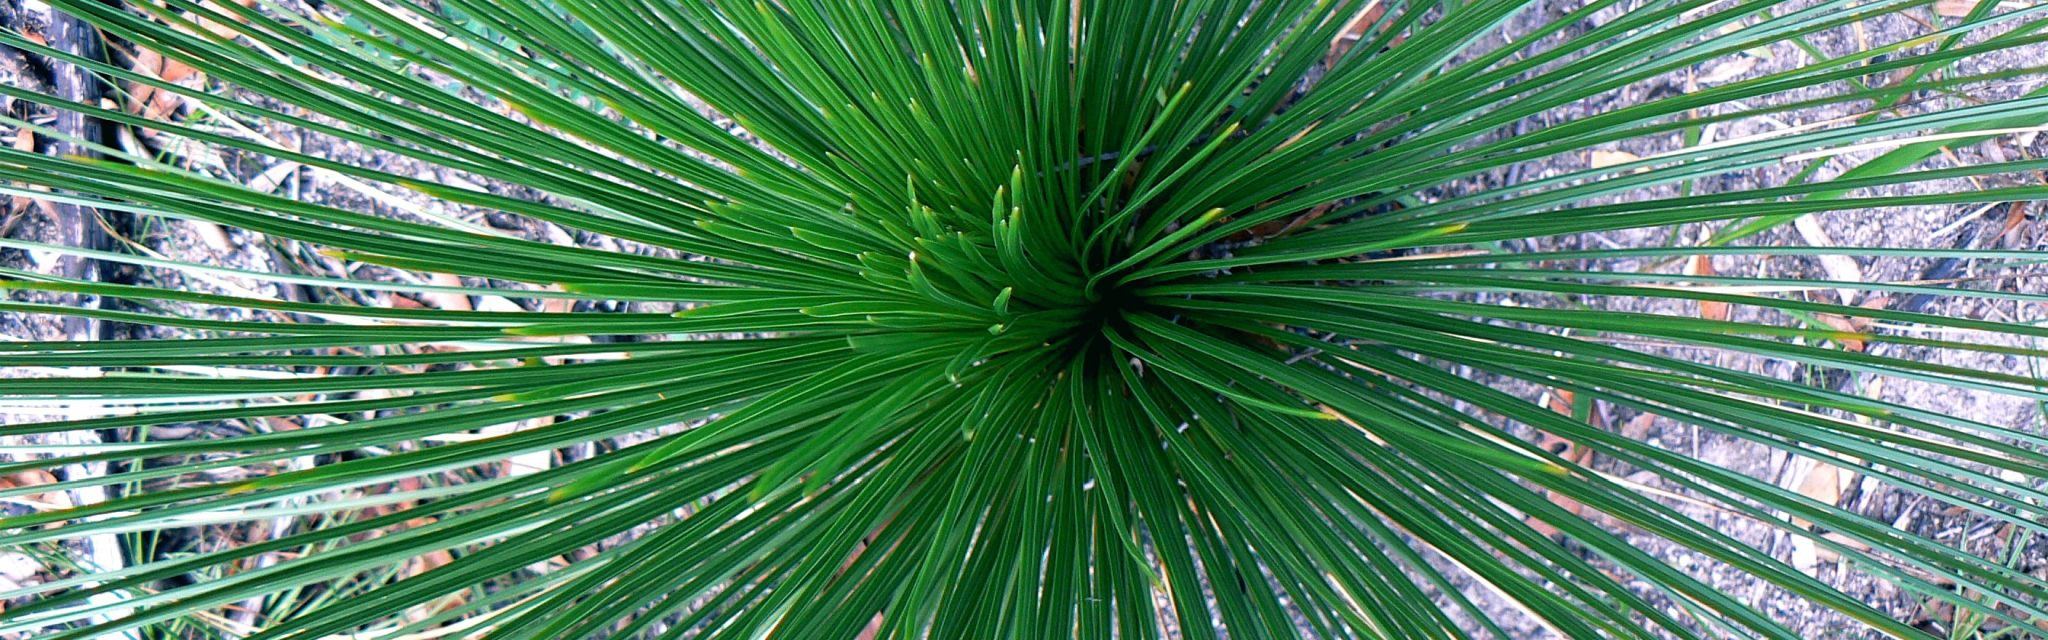 Looking deep into the centre of a Grass tree typical of the Australian bush and Great Divide Tour